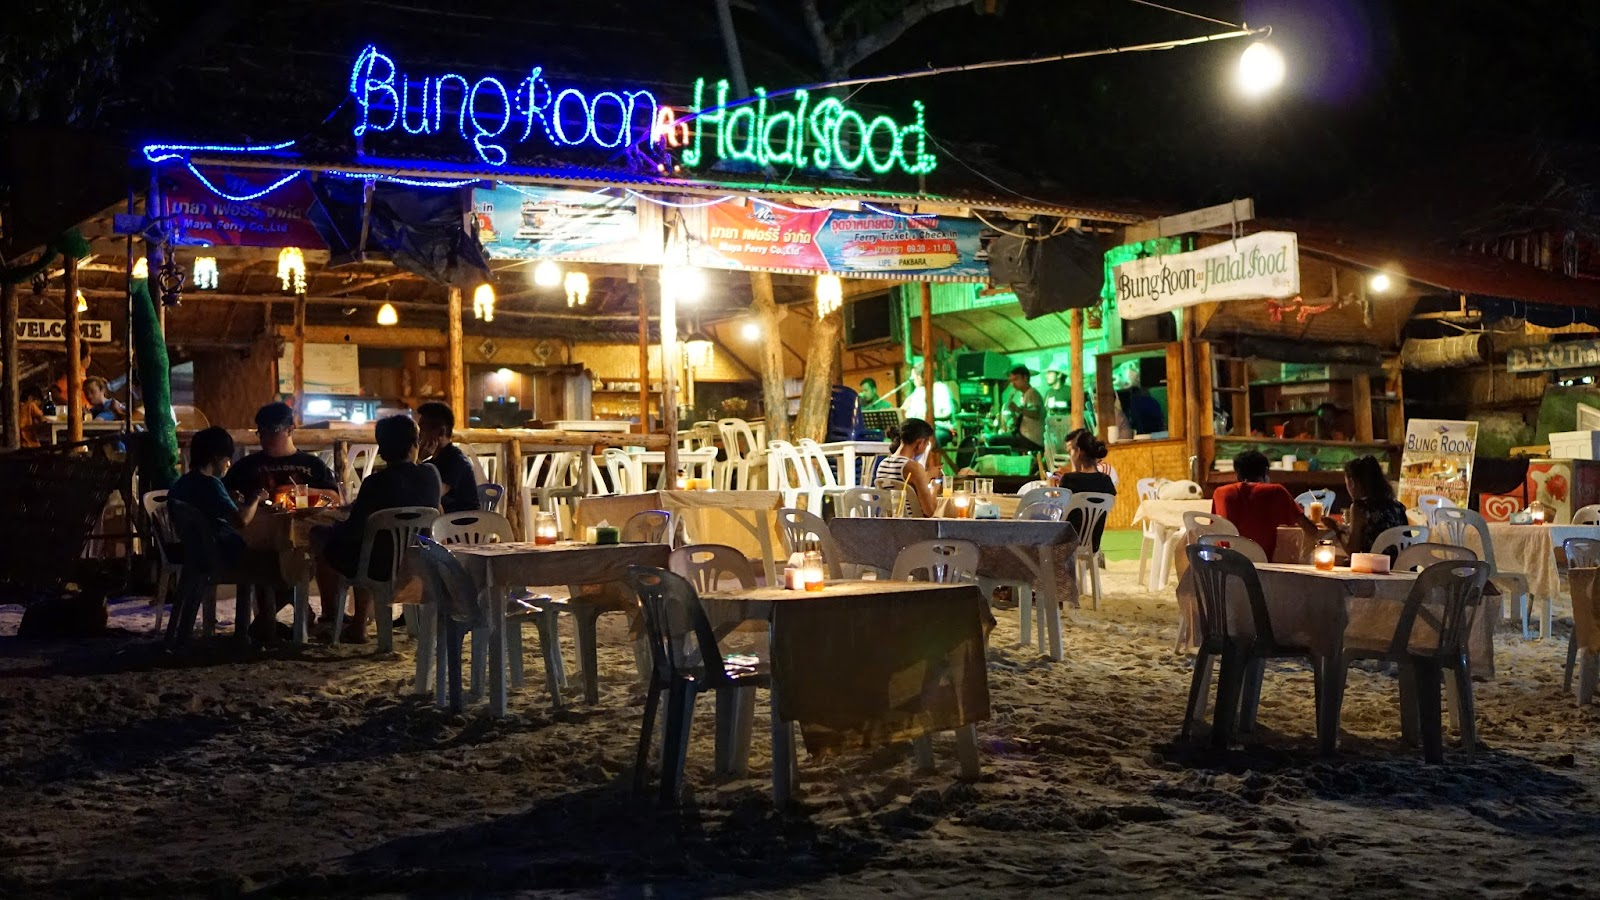 Bungroon Halal Food at Pattaya Beach. The food wasn't too bad, at least there was a live band to keep the night interesting